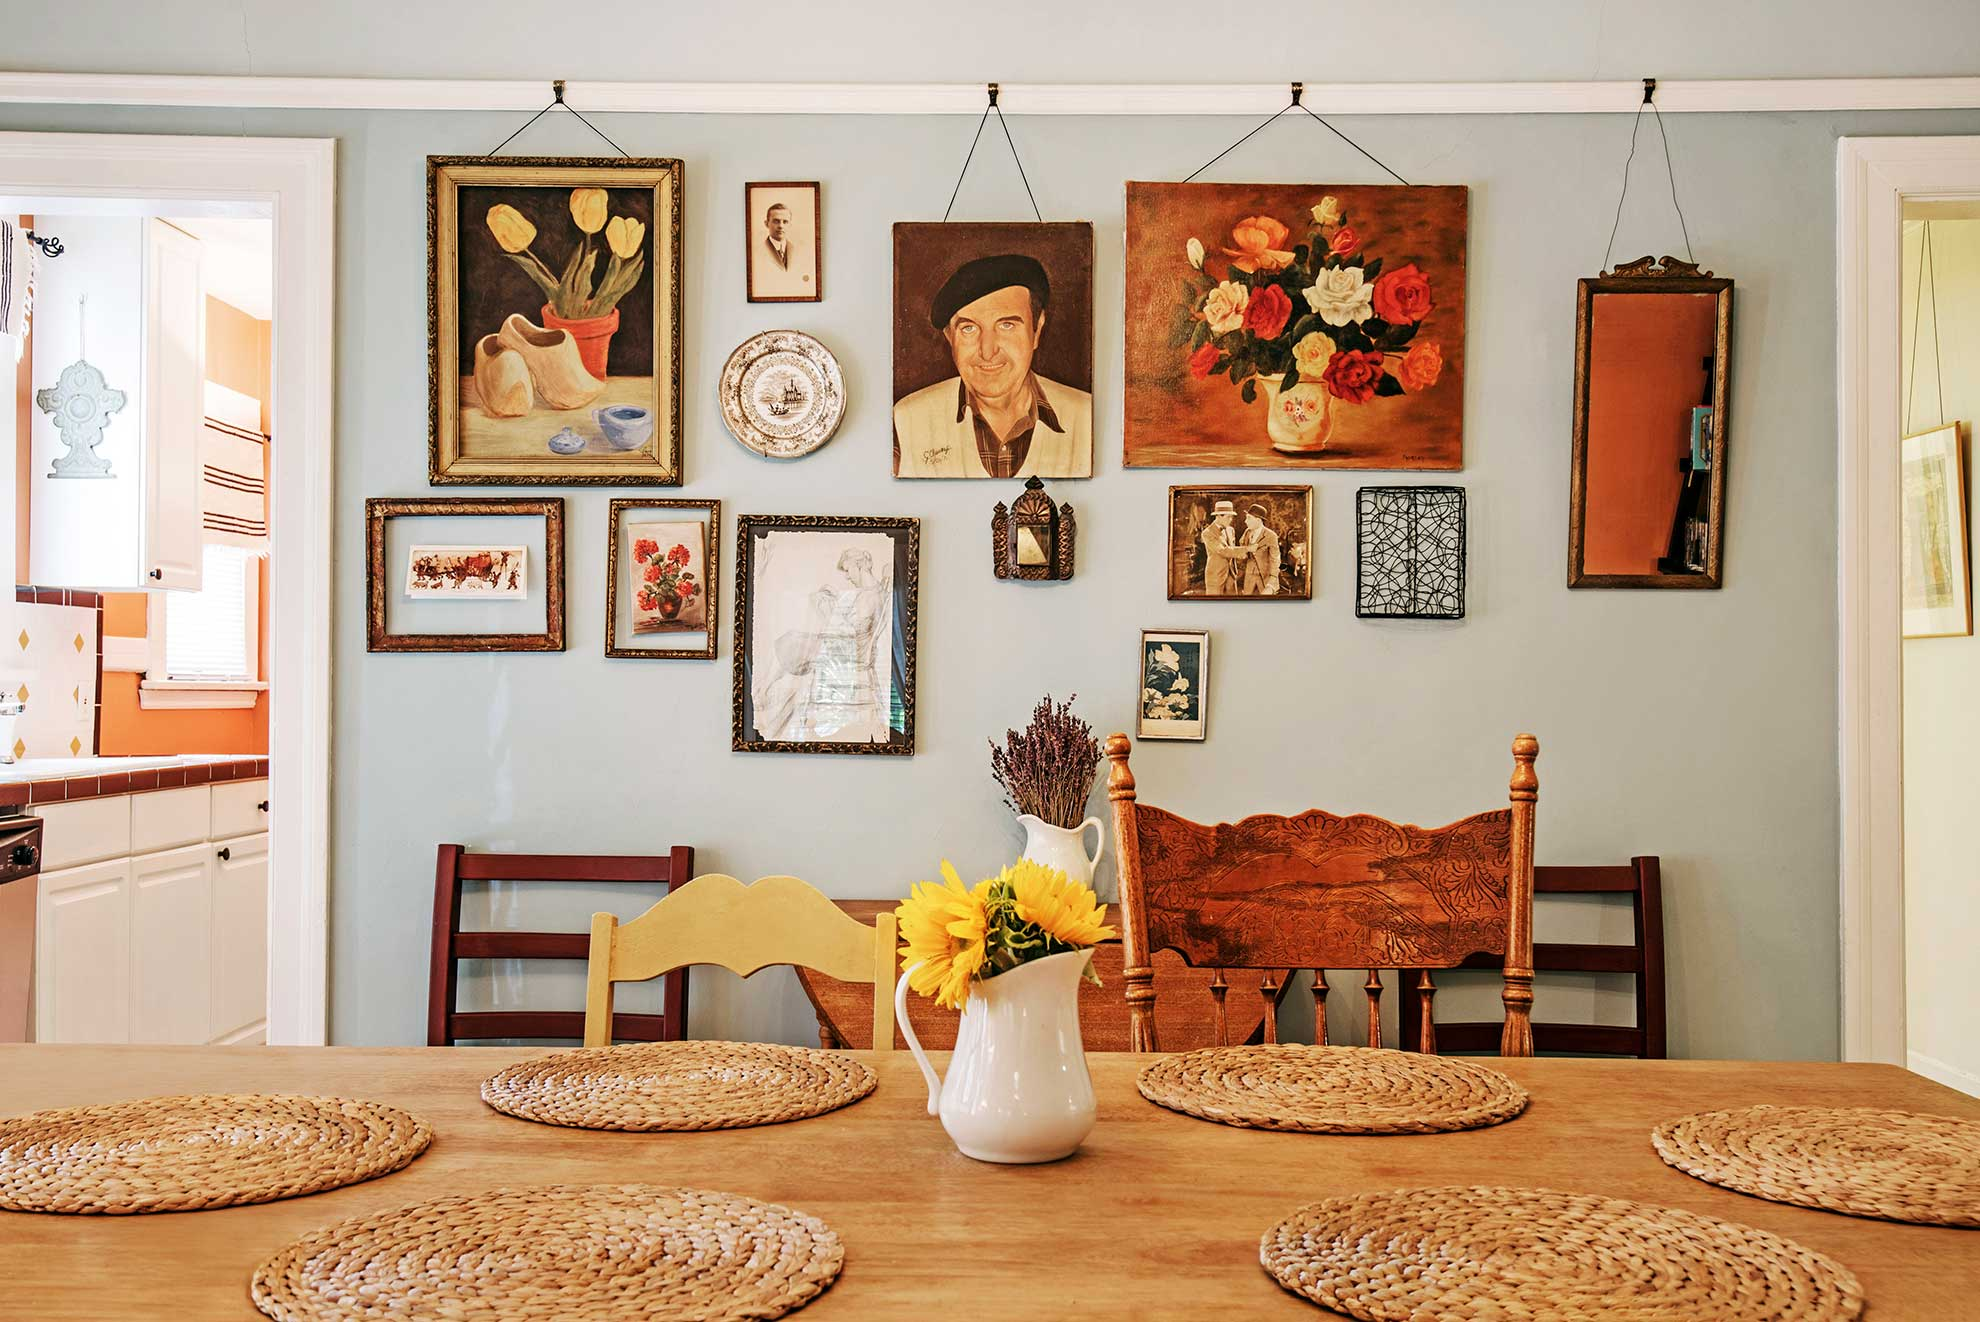 Airbnb listing interior of dining table and art hanging on the wall